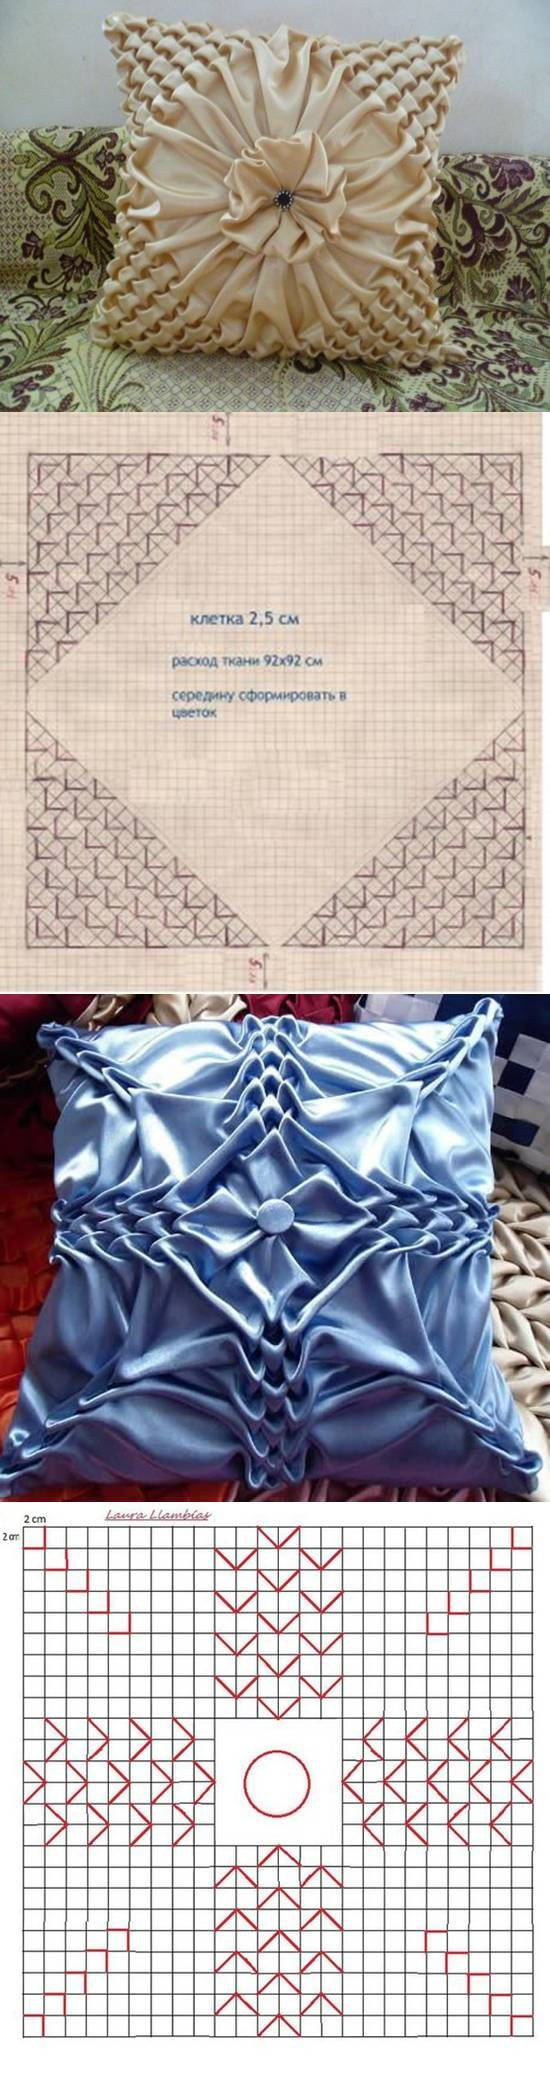 DIY Pillow Patterns Puffed Sleeves | UsefulDIY.com Follow us on Facebook ==> https://www.facebook.com/UsefulDiy